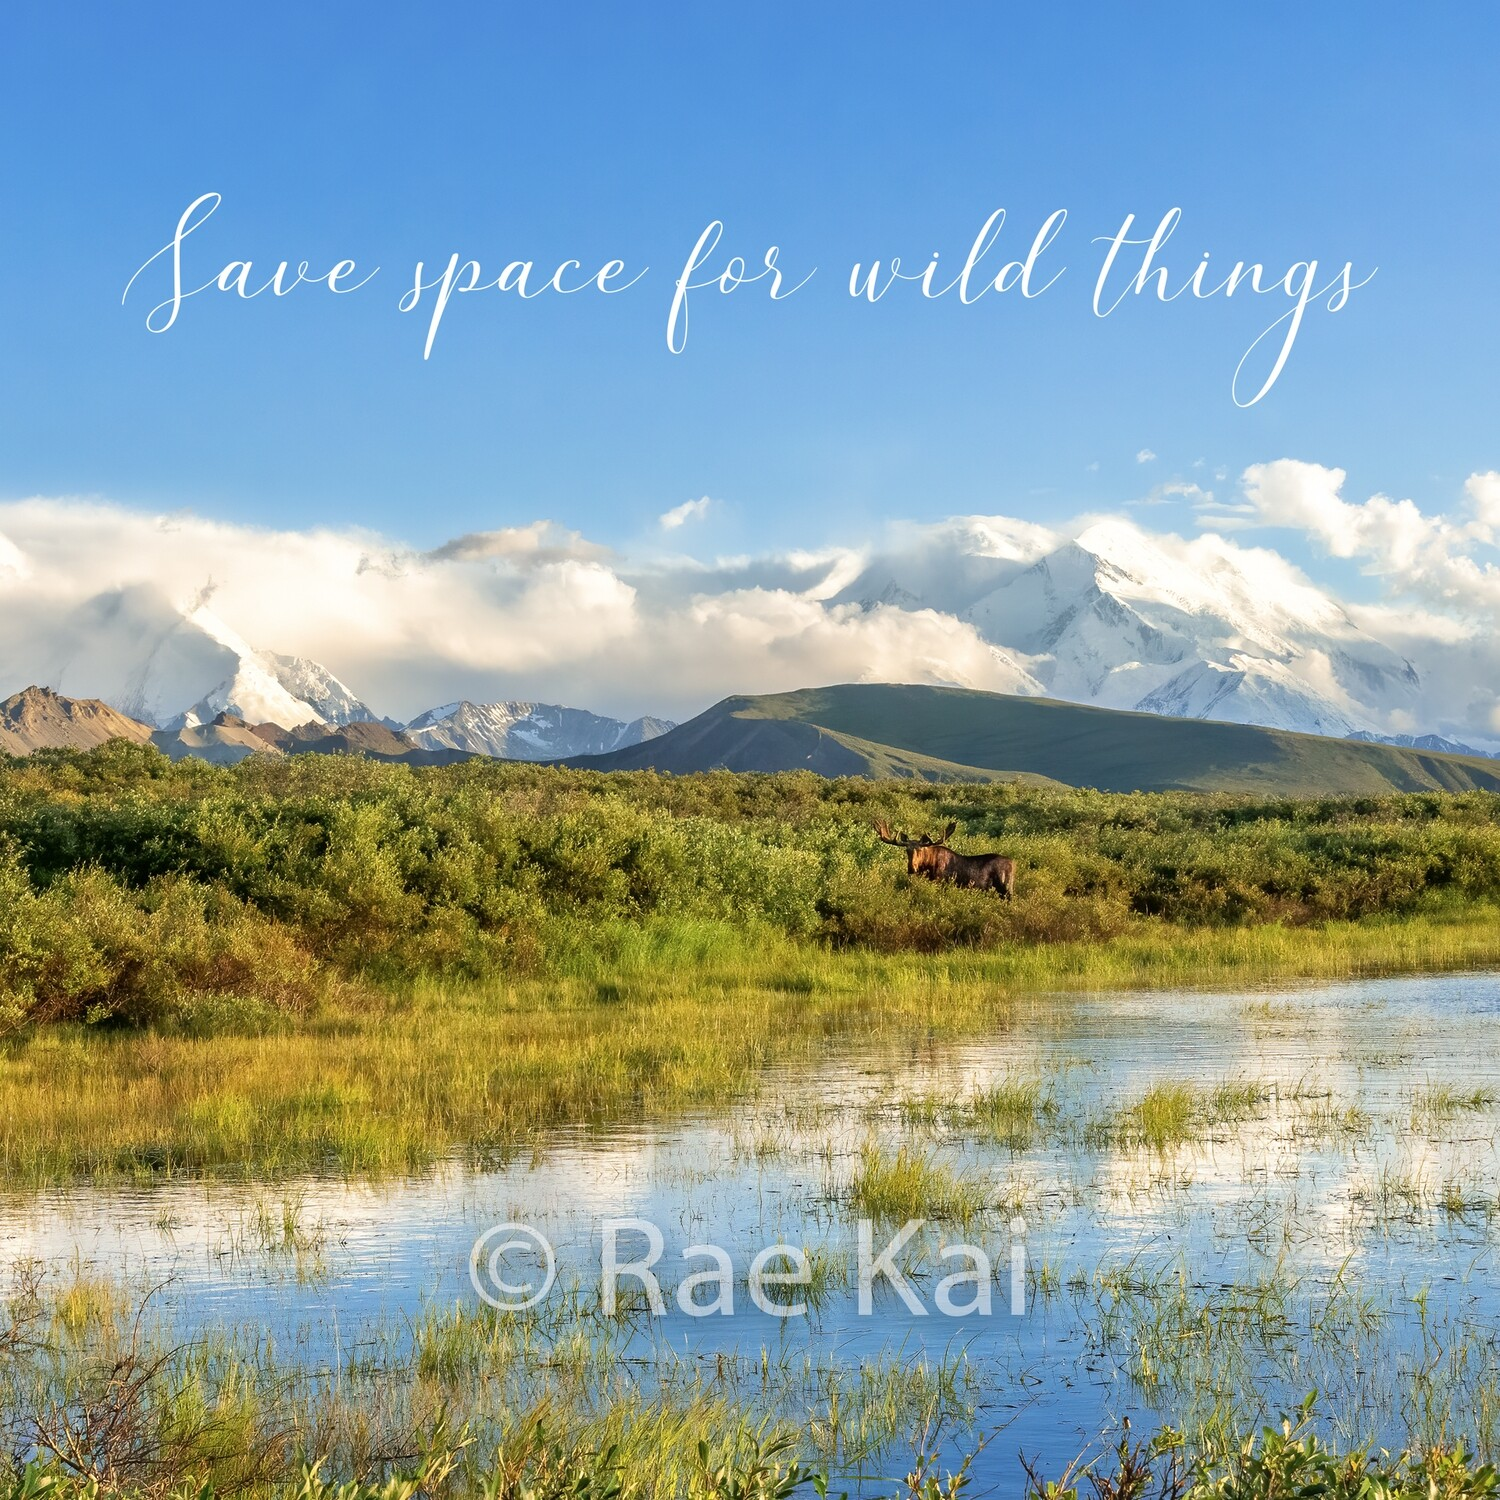 Save Space For Wild Things-Inspirational Square Photo